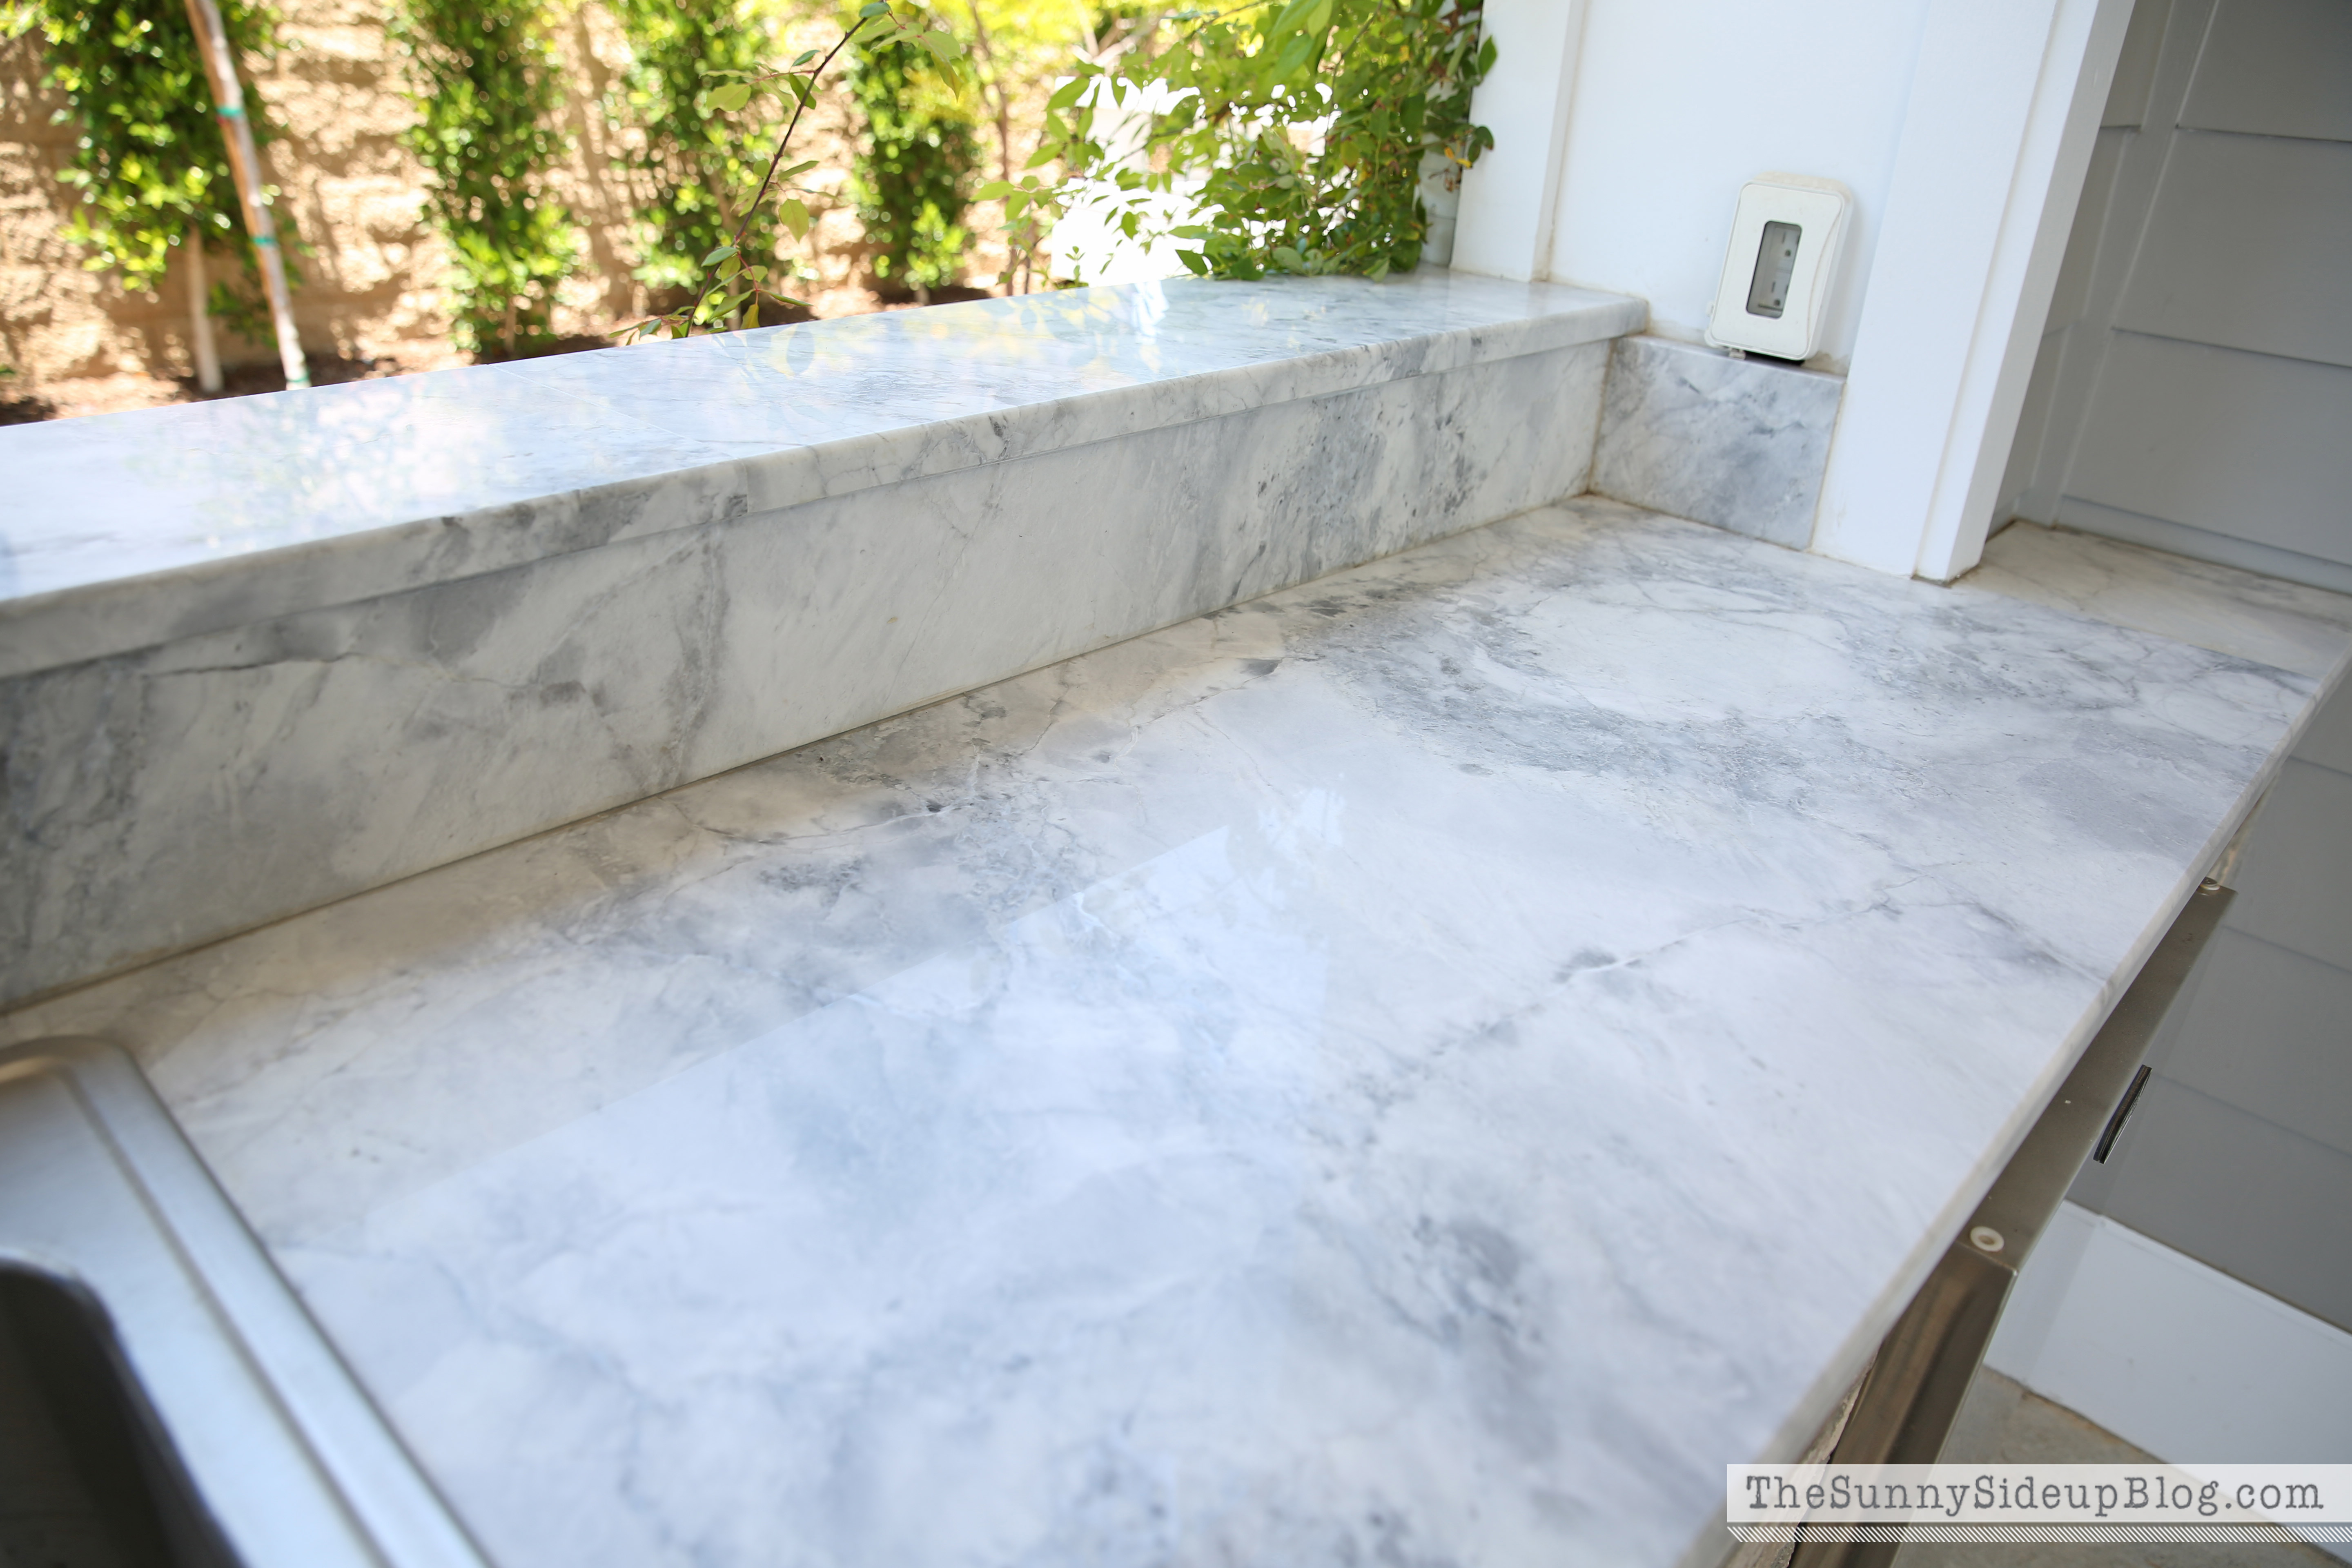 Countertop That Looks Like Marble : ... granite that looked a lot like marble so I used it for the countertop